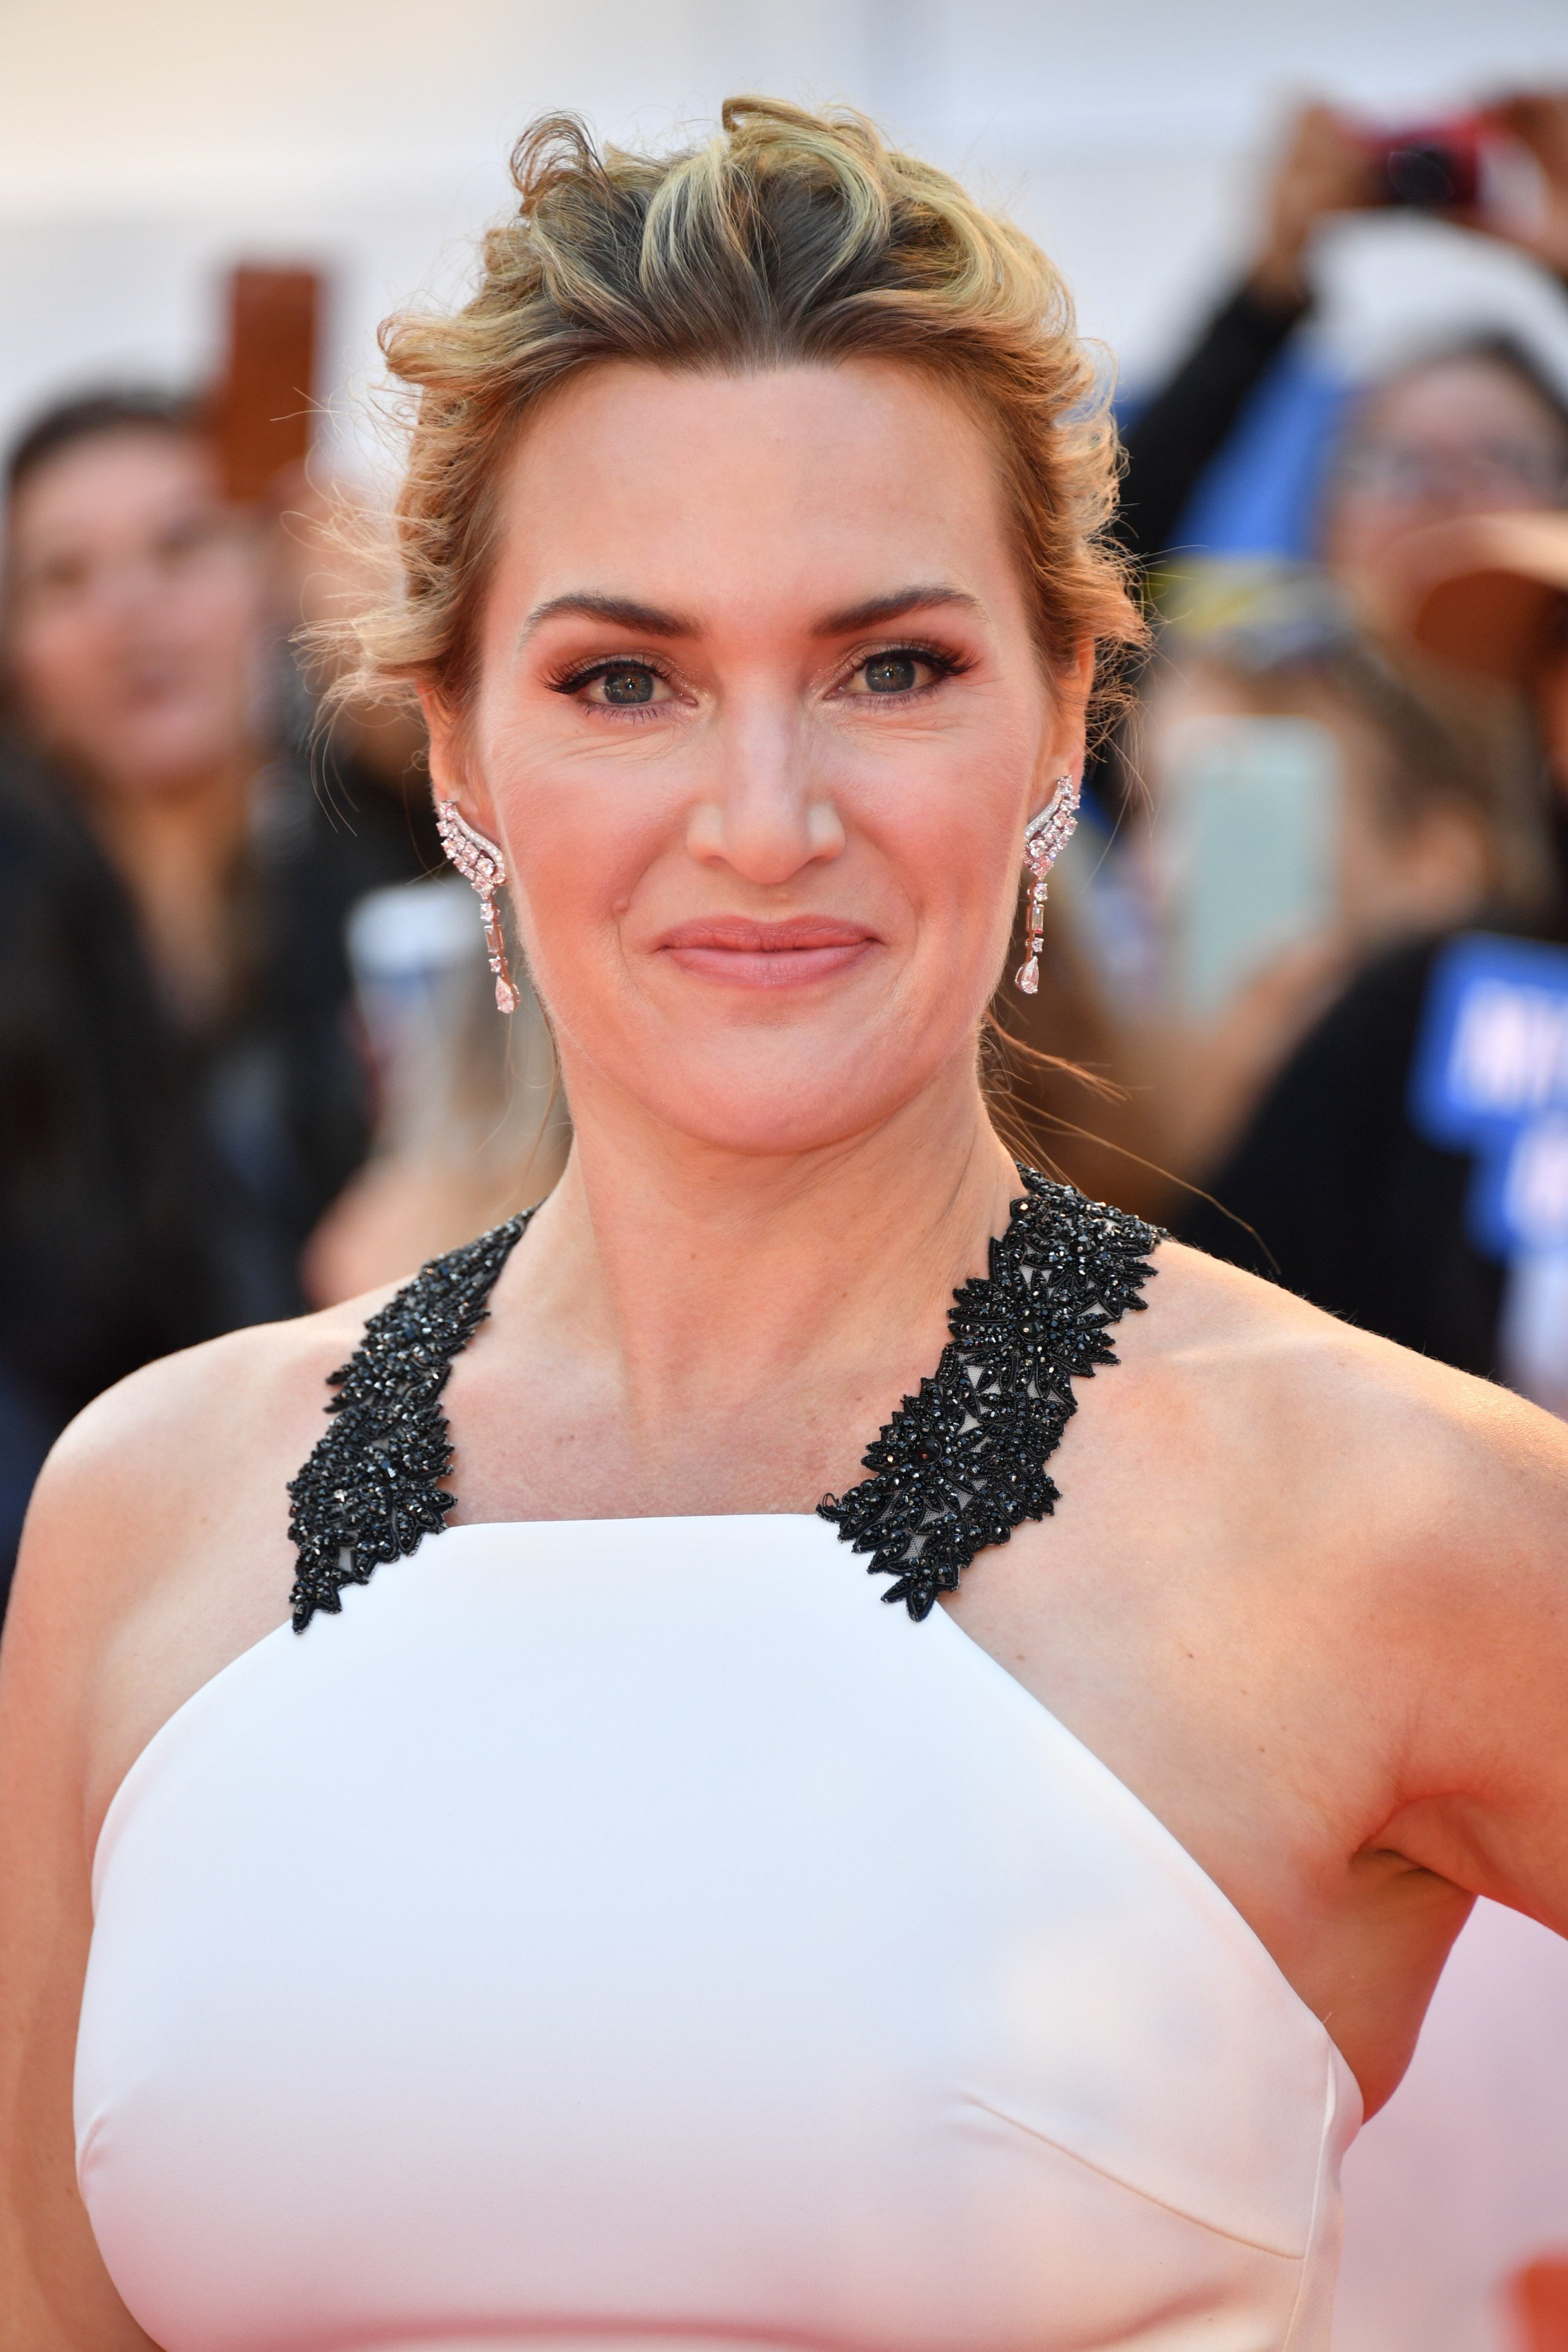 September 10, 2017 - Toronto, Ontario, Canada - Actress KATE WINSLET attends 'The Mountain Between Us' Premiere  premiere during the 2017 Toronto International Film Festival at Roy Thomson Hall on September 10, 2017 in Toronto, Canada, Image: 348971545, License: Rights-managed, Restrictions: , Model Release: no, Credit line: Profimedia, Zuma Press - Entertaiment